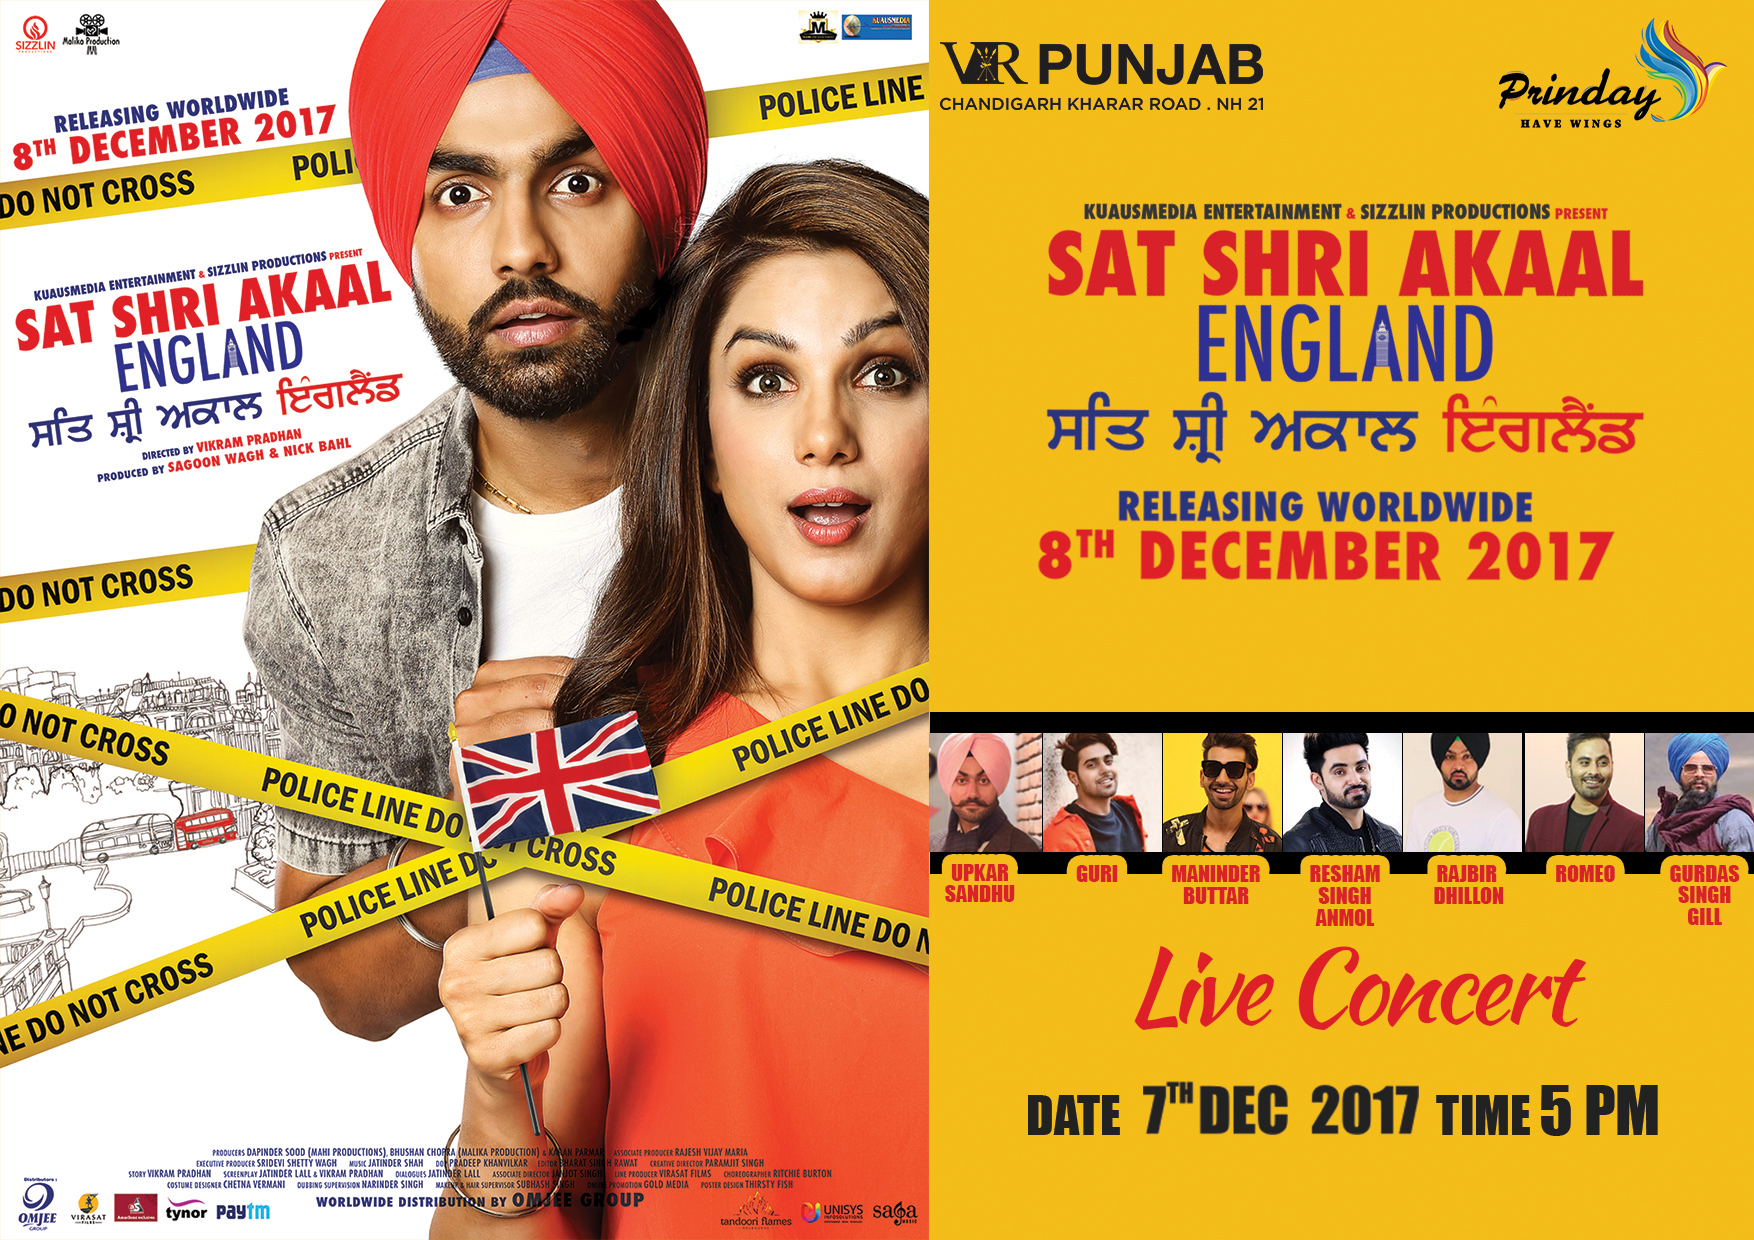 AMMY VIRK LIVE - SAT SHRI AKAAL MOVIE PROMOTIONS